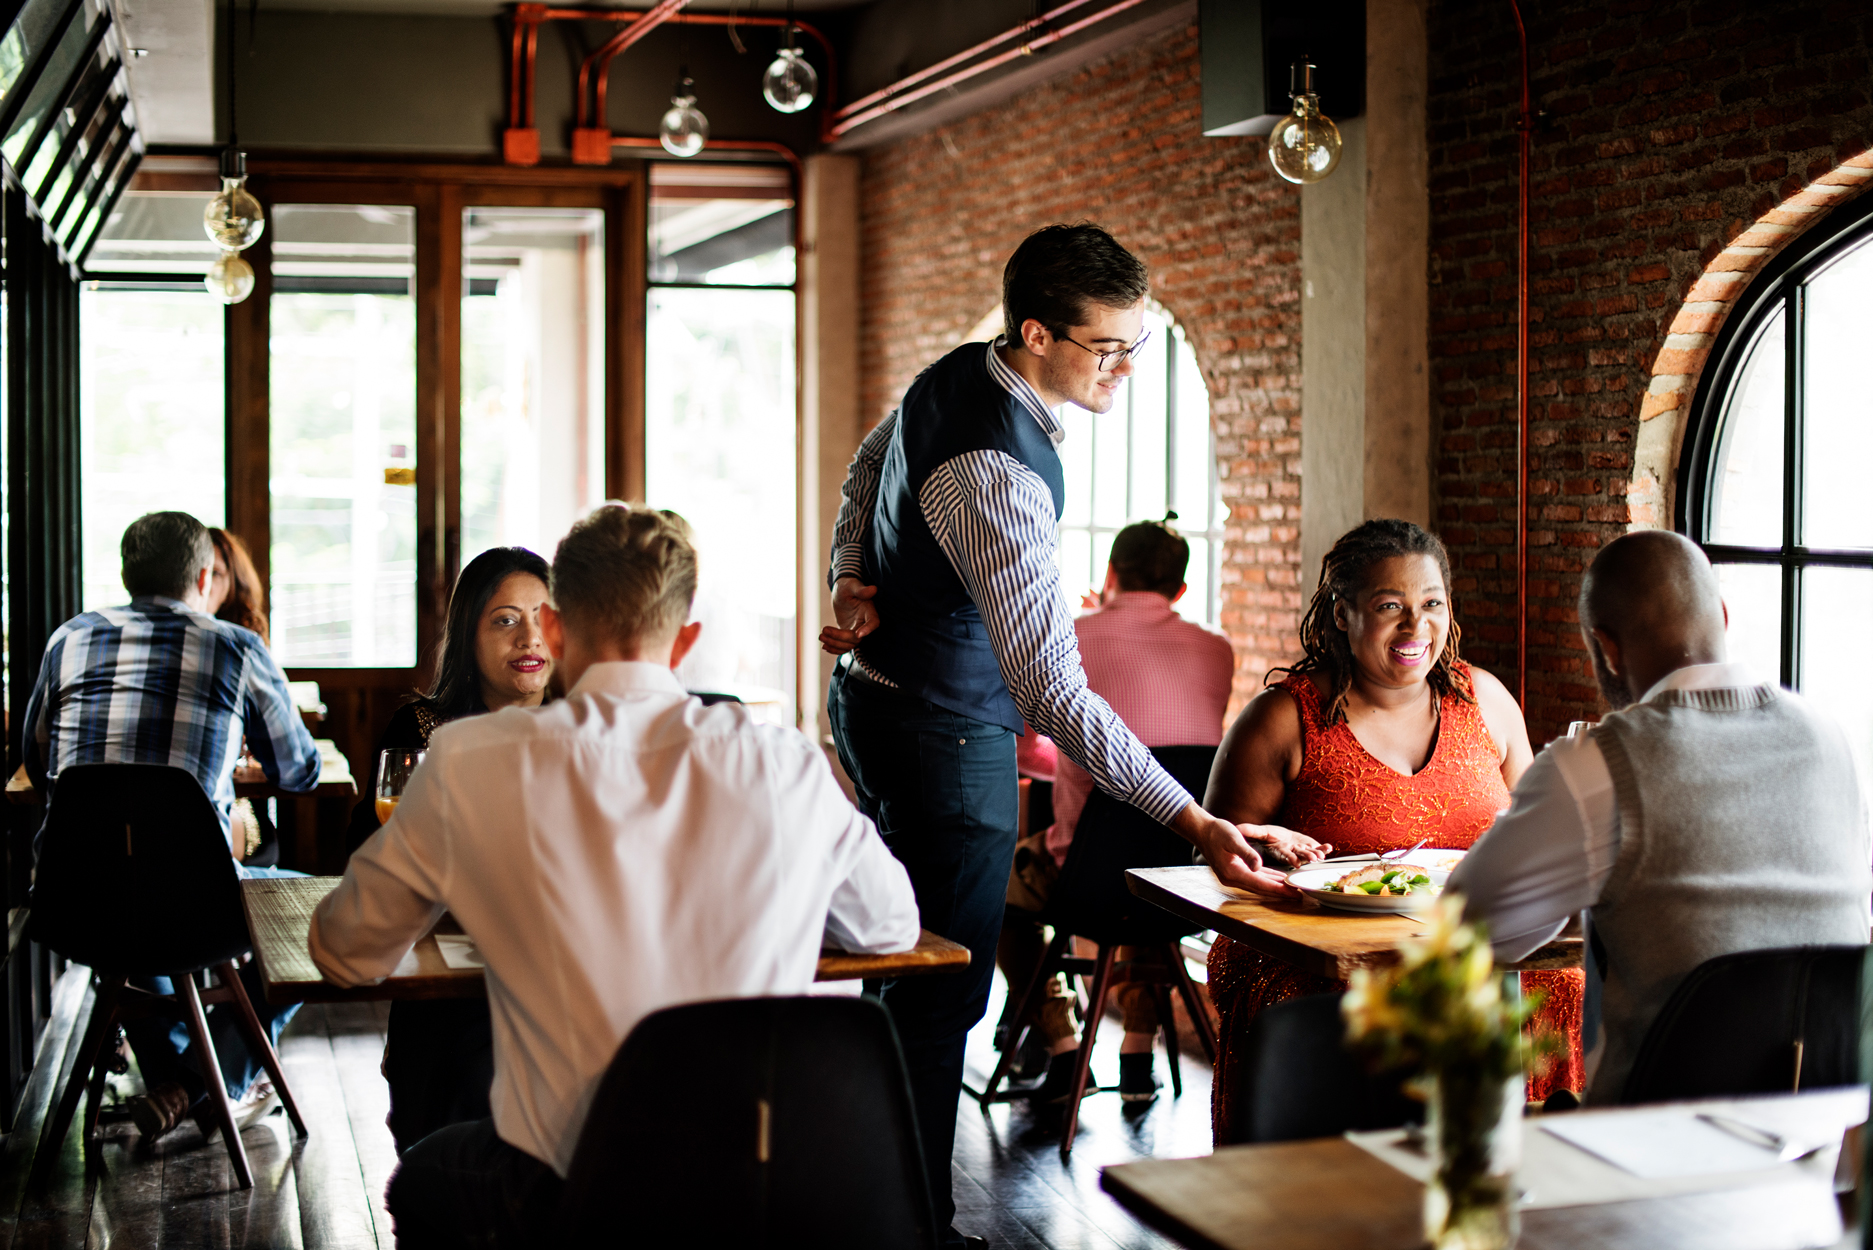 How To Eat At Restaurants and Cafes During Coronavirus